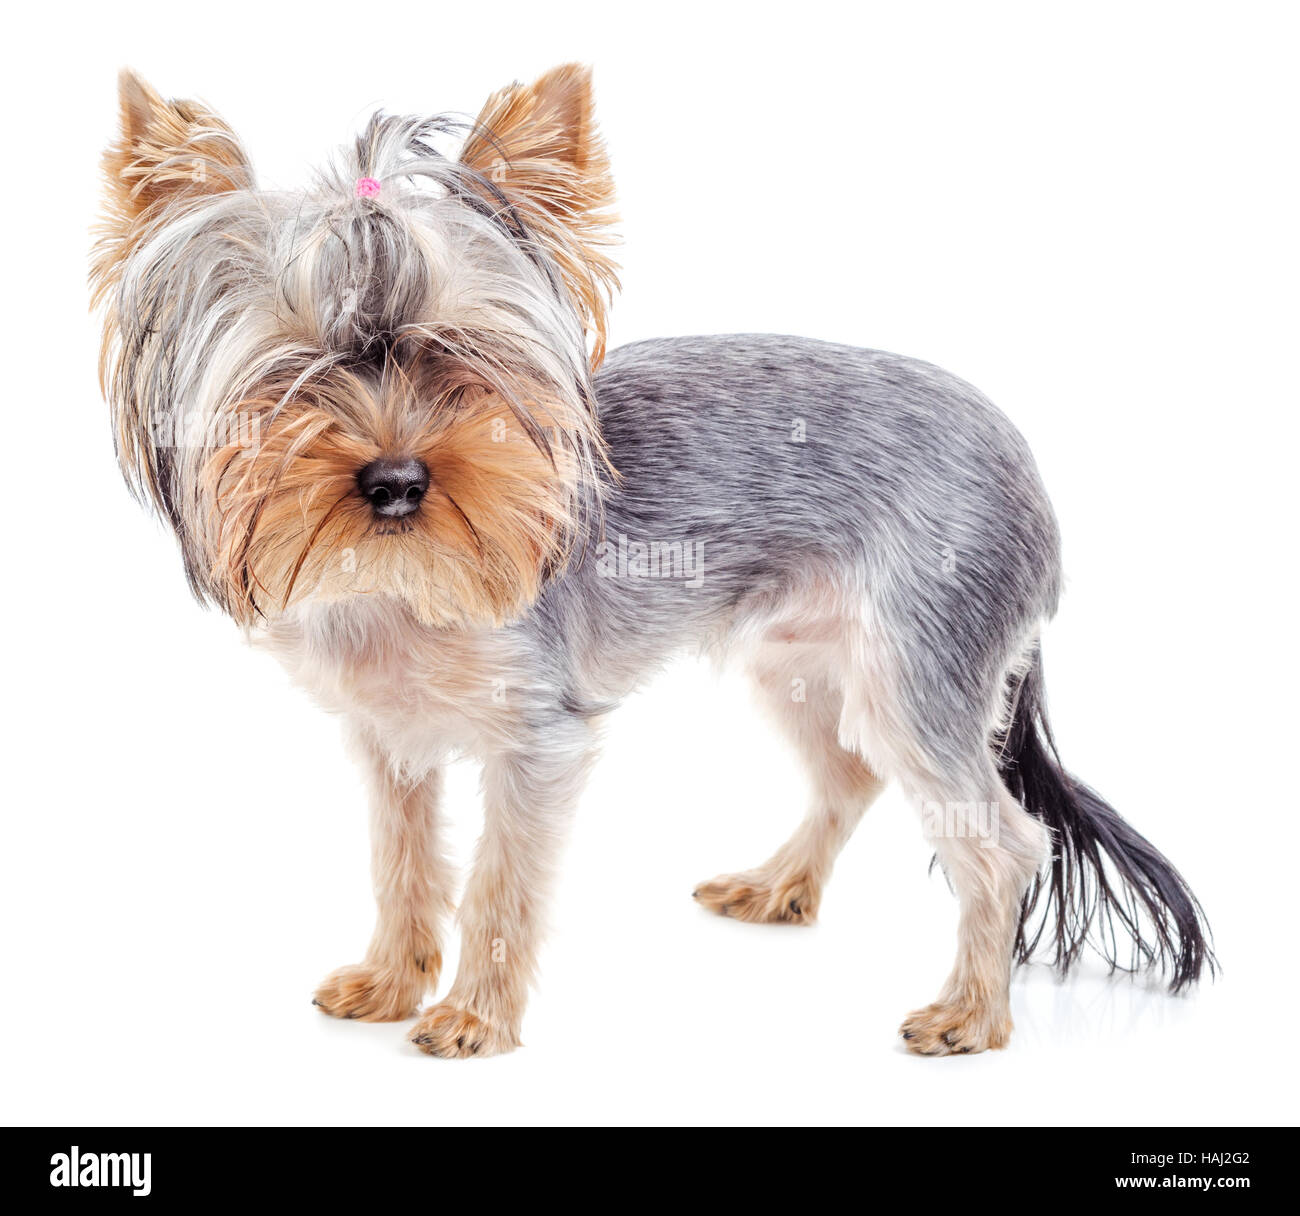 Yorkshire Terrier After Grooming Hair Cut Isolated On White Stock